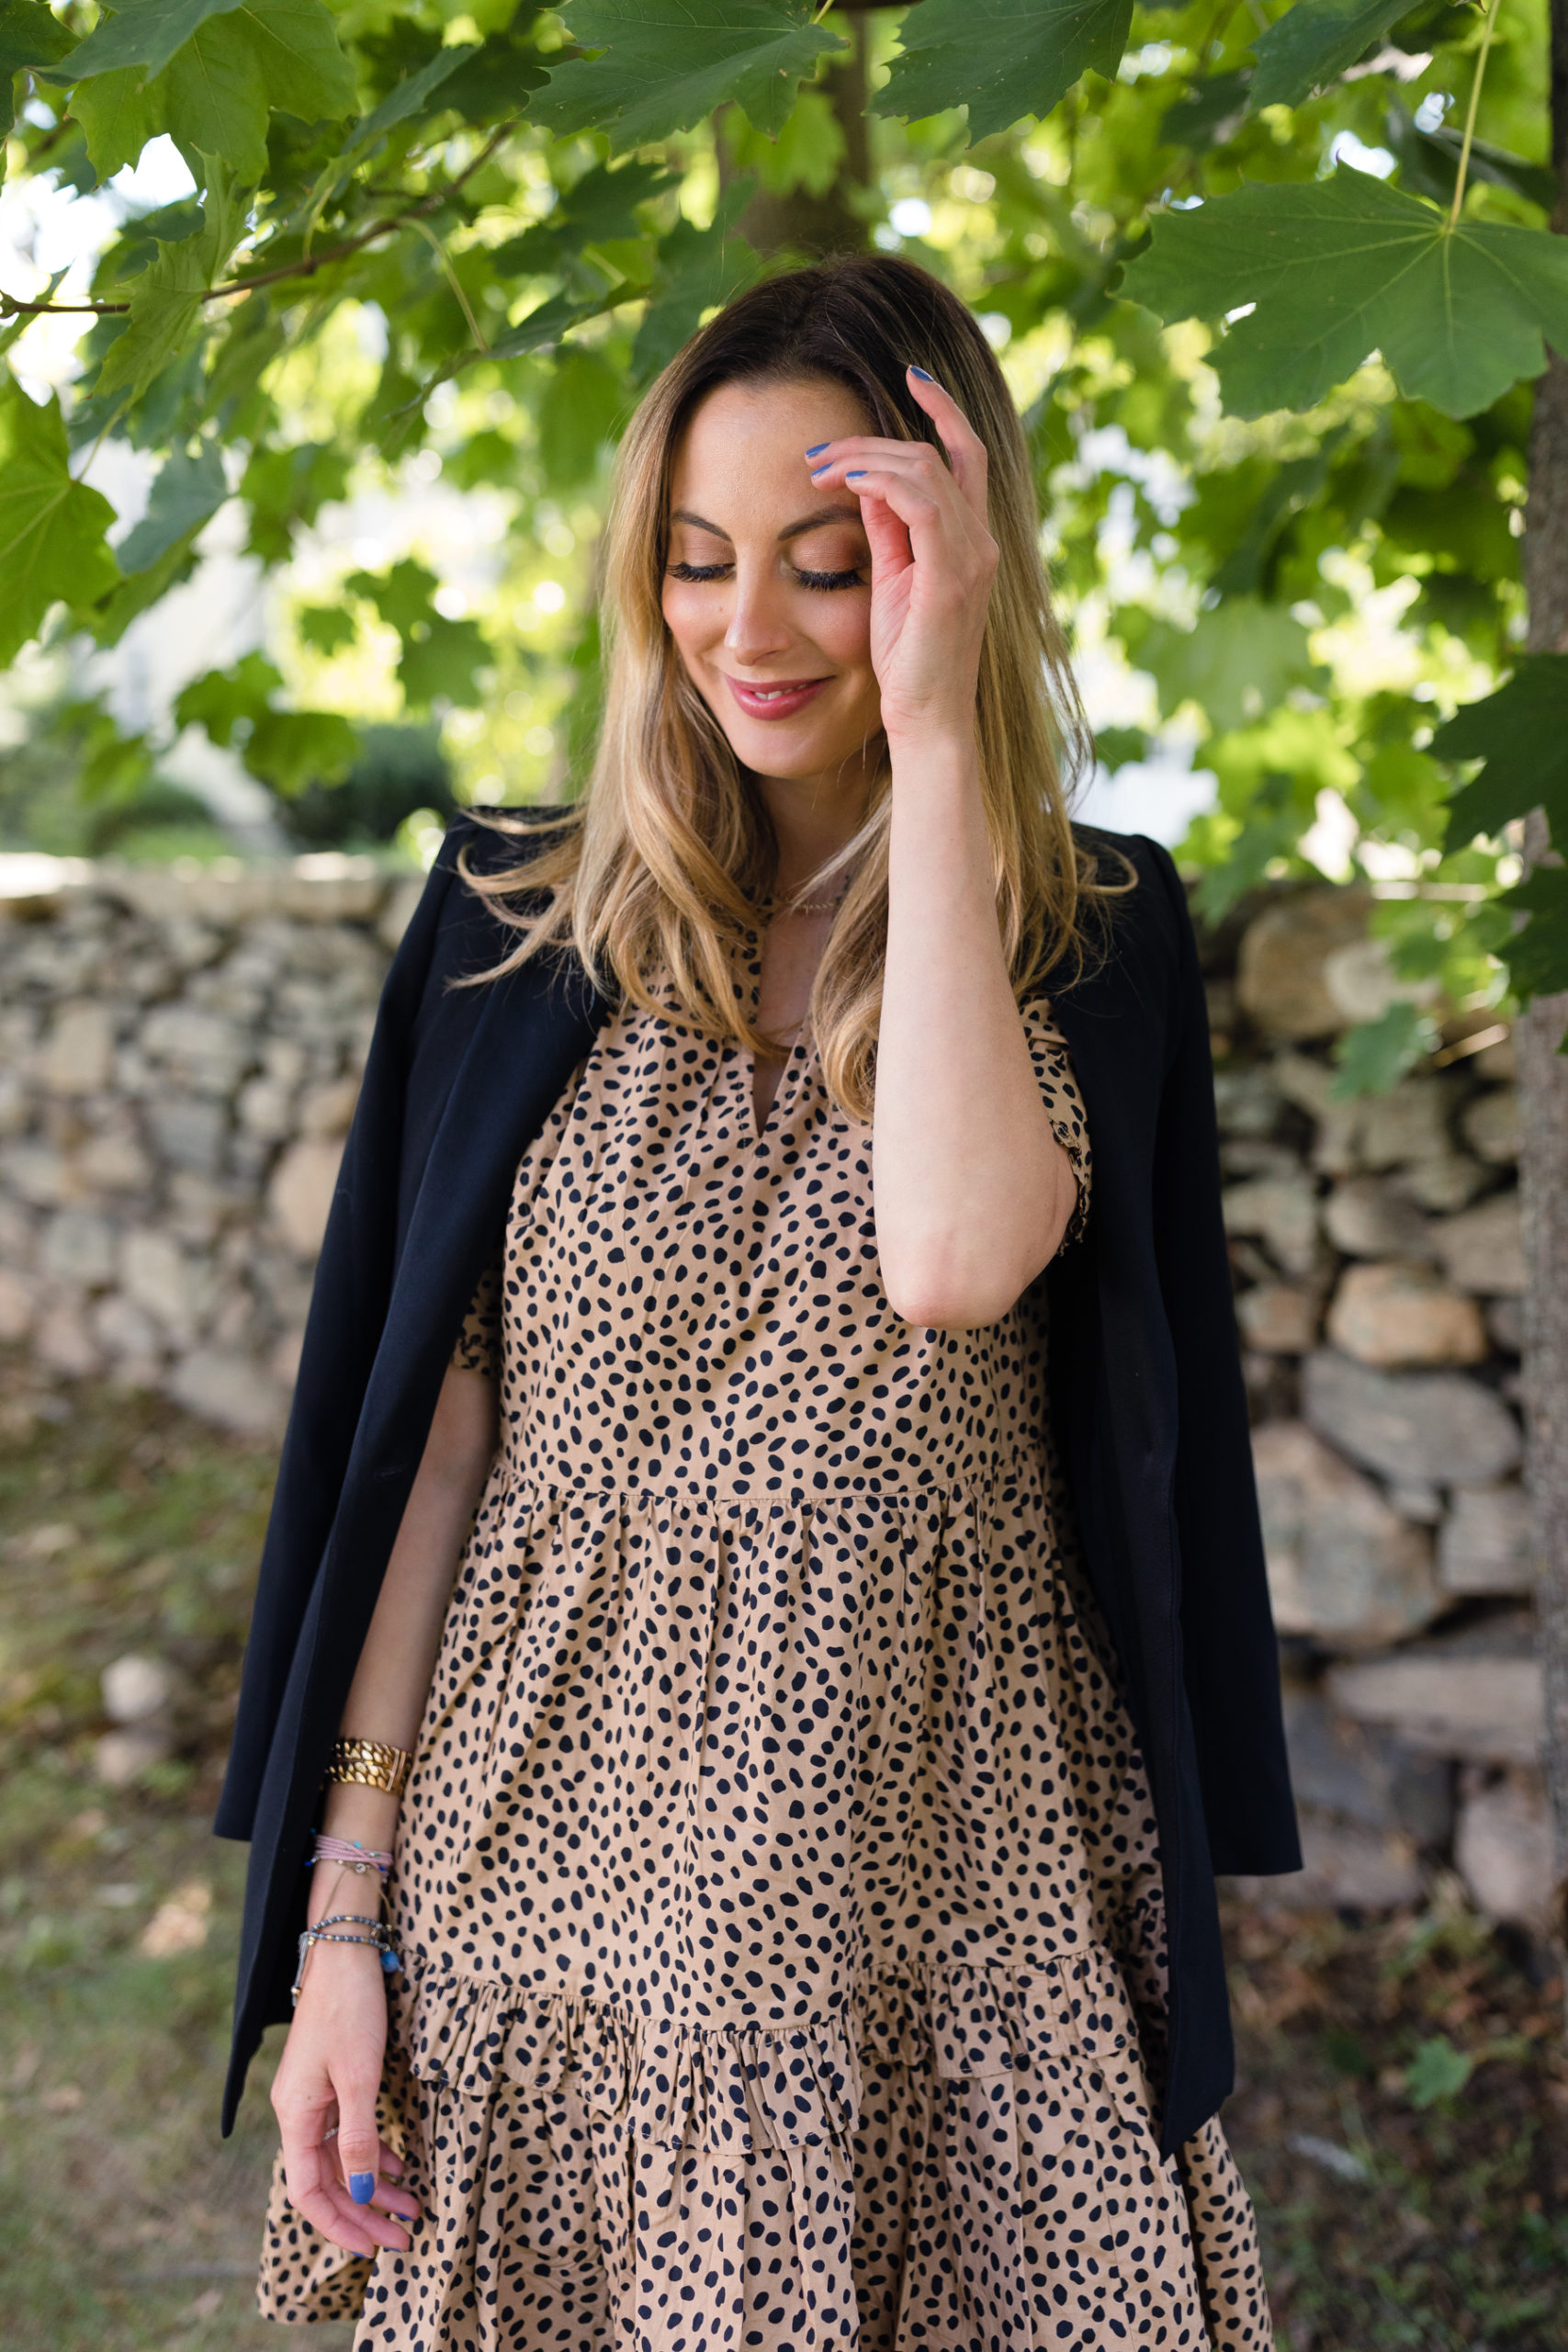 Eva Amurri shares her favorite fall transitional style pieces